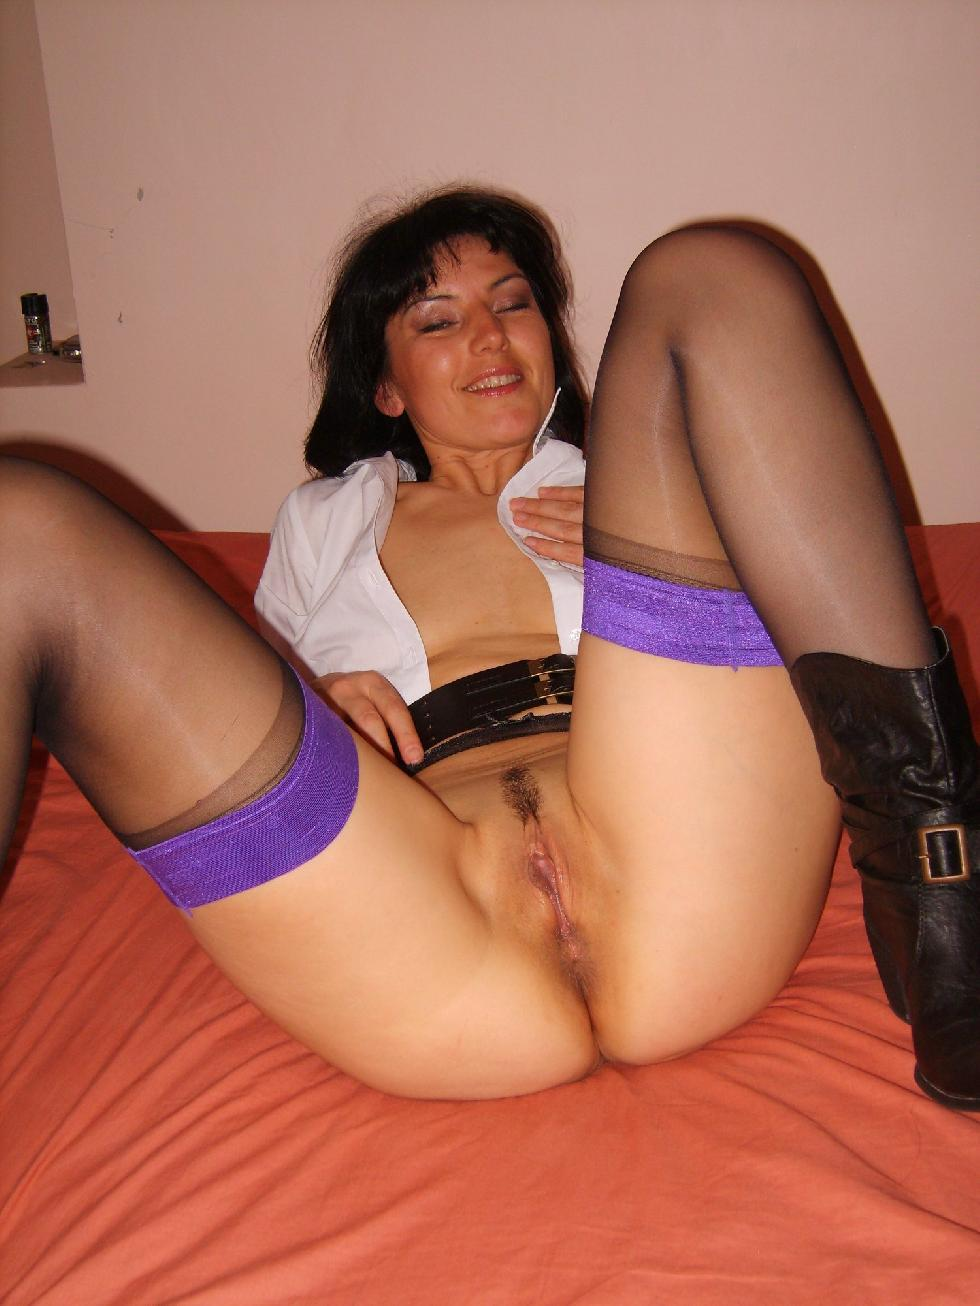 Wife spread legs with stockings